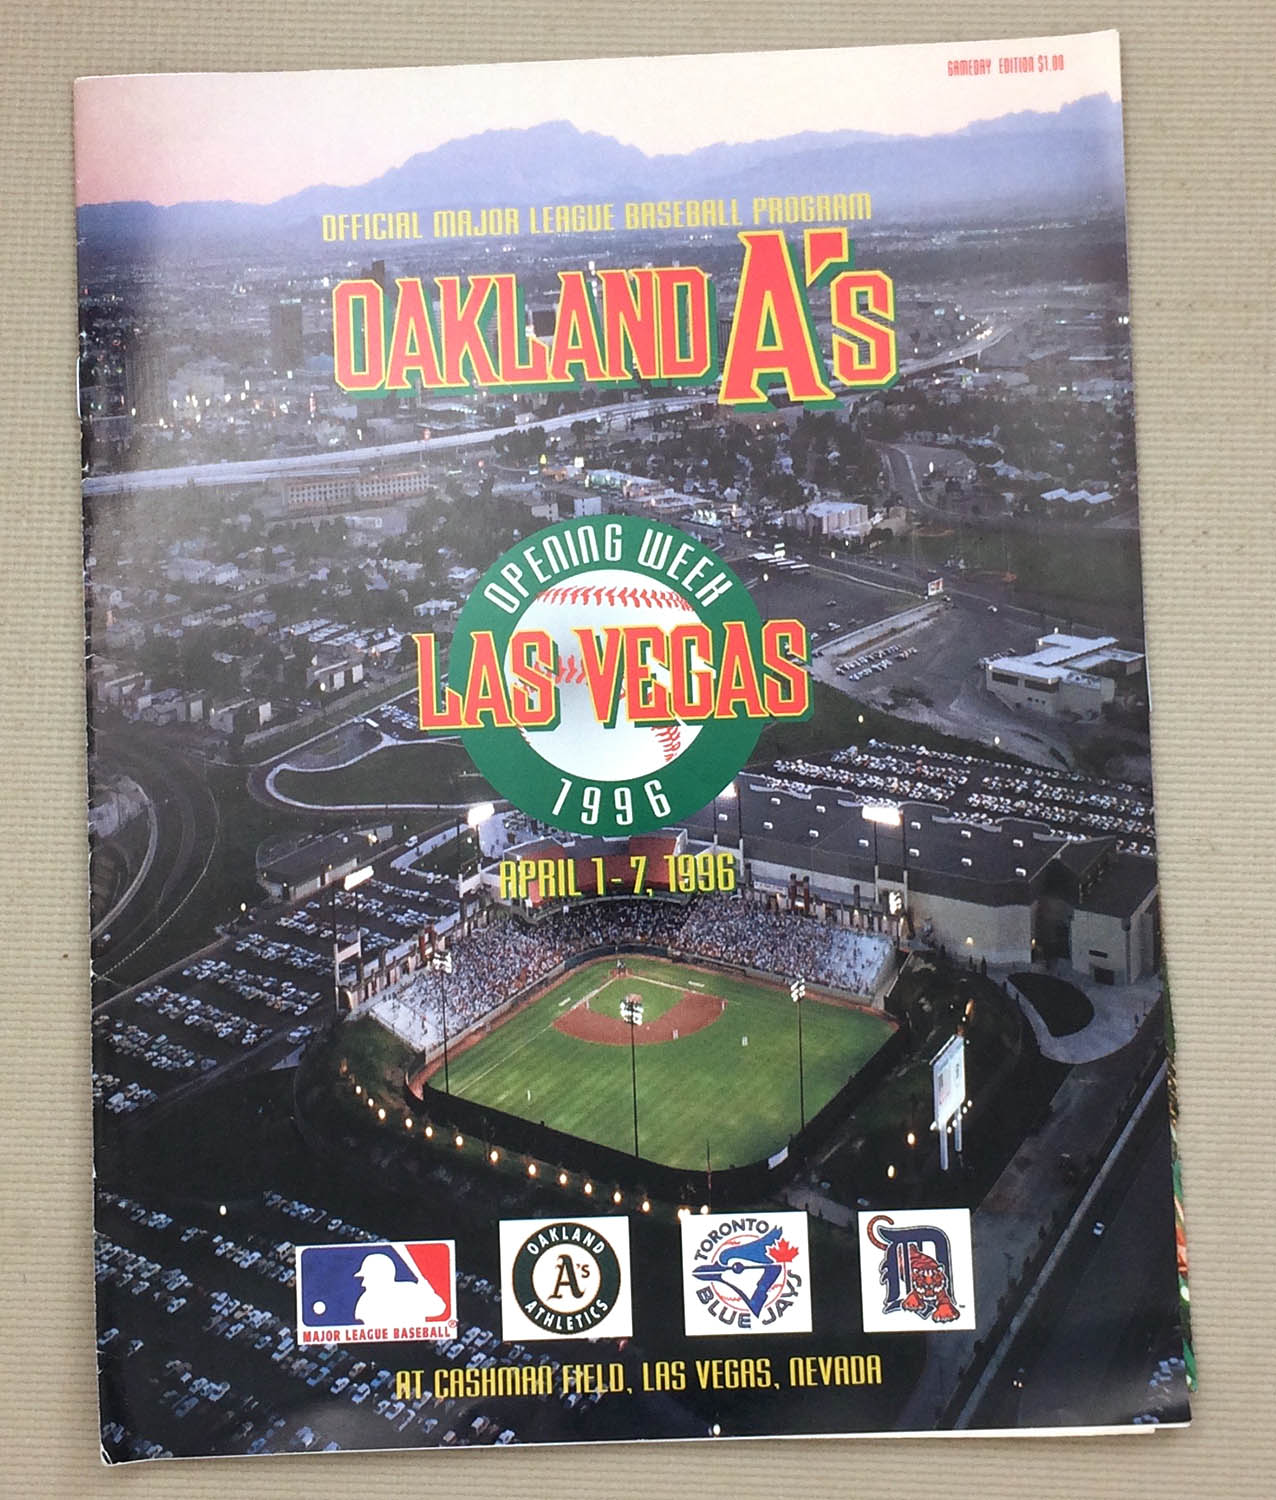 Oakland Athletics 1996 Las Vegas Program